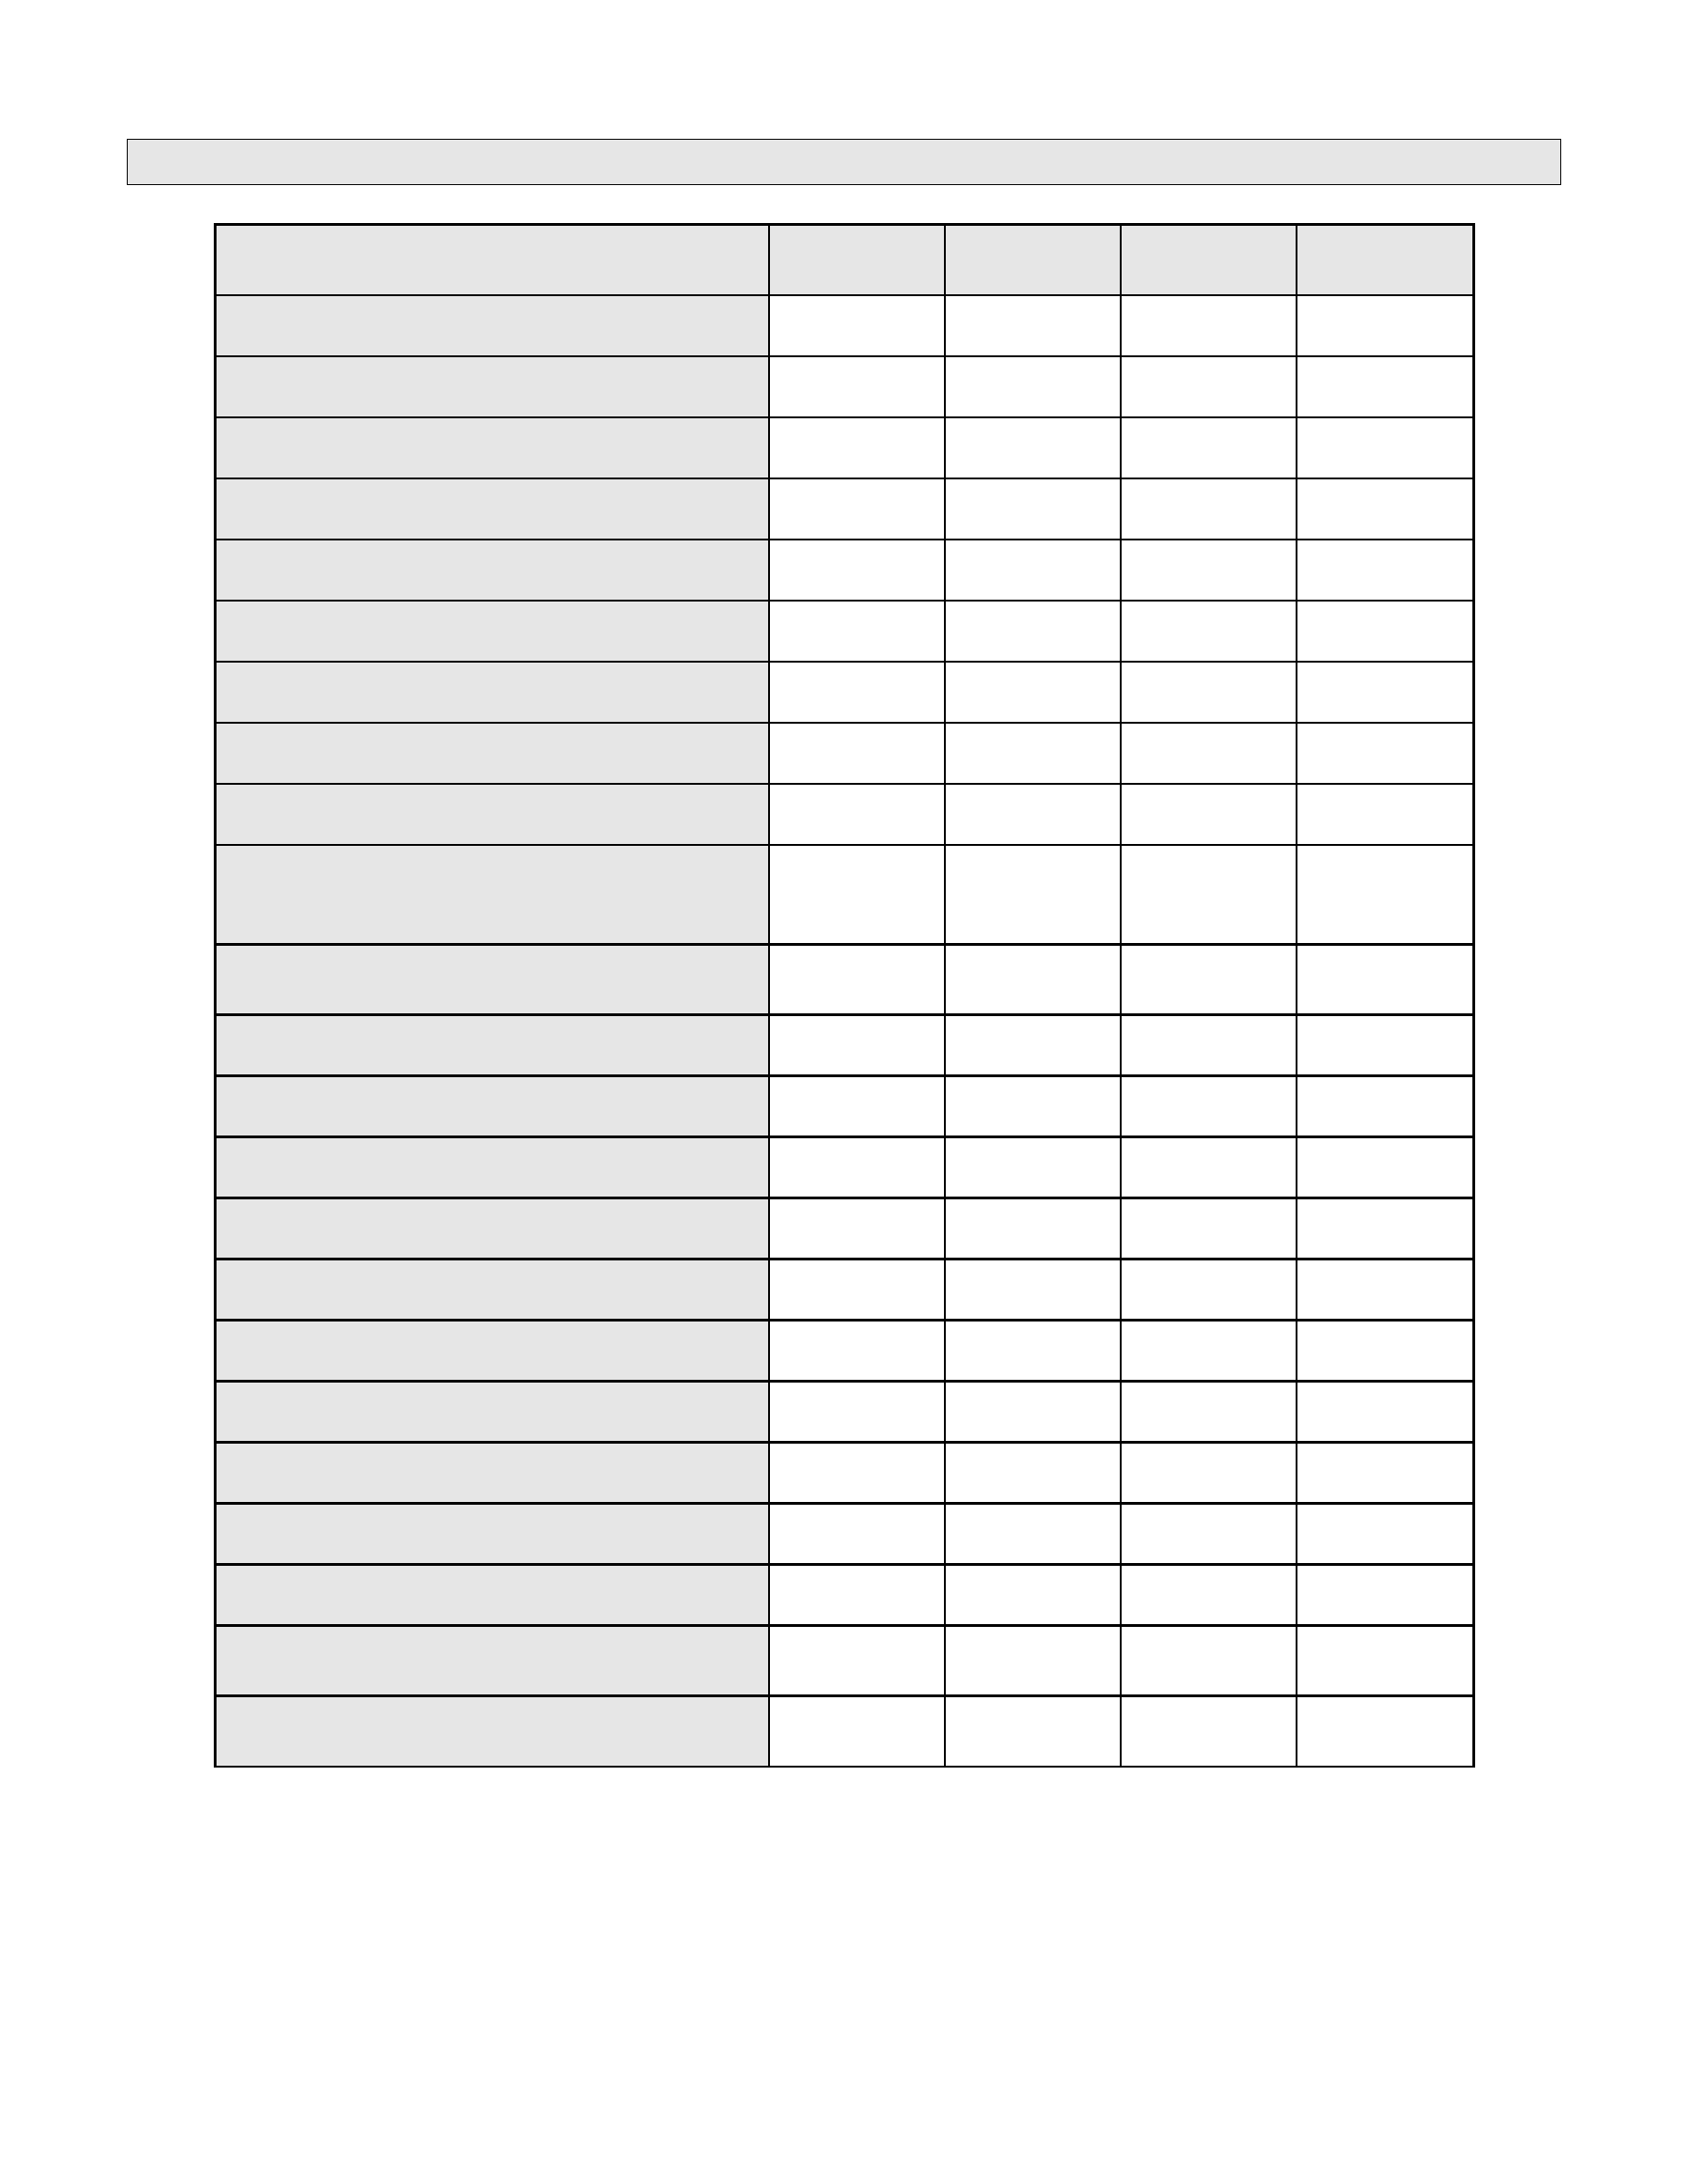 Phase 10 Score Sheet Example Free Download – Phase 10 Score Sheet Template